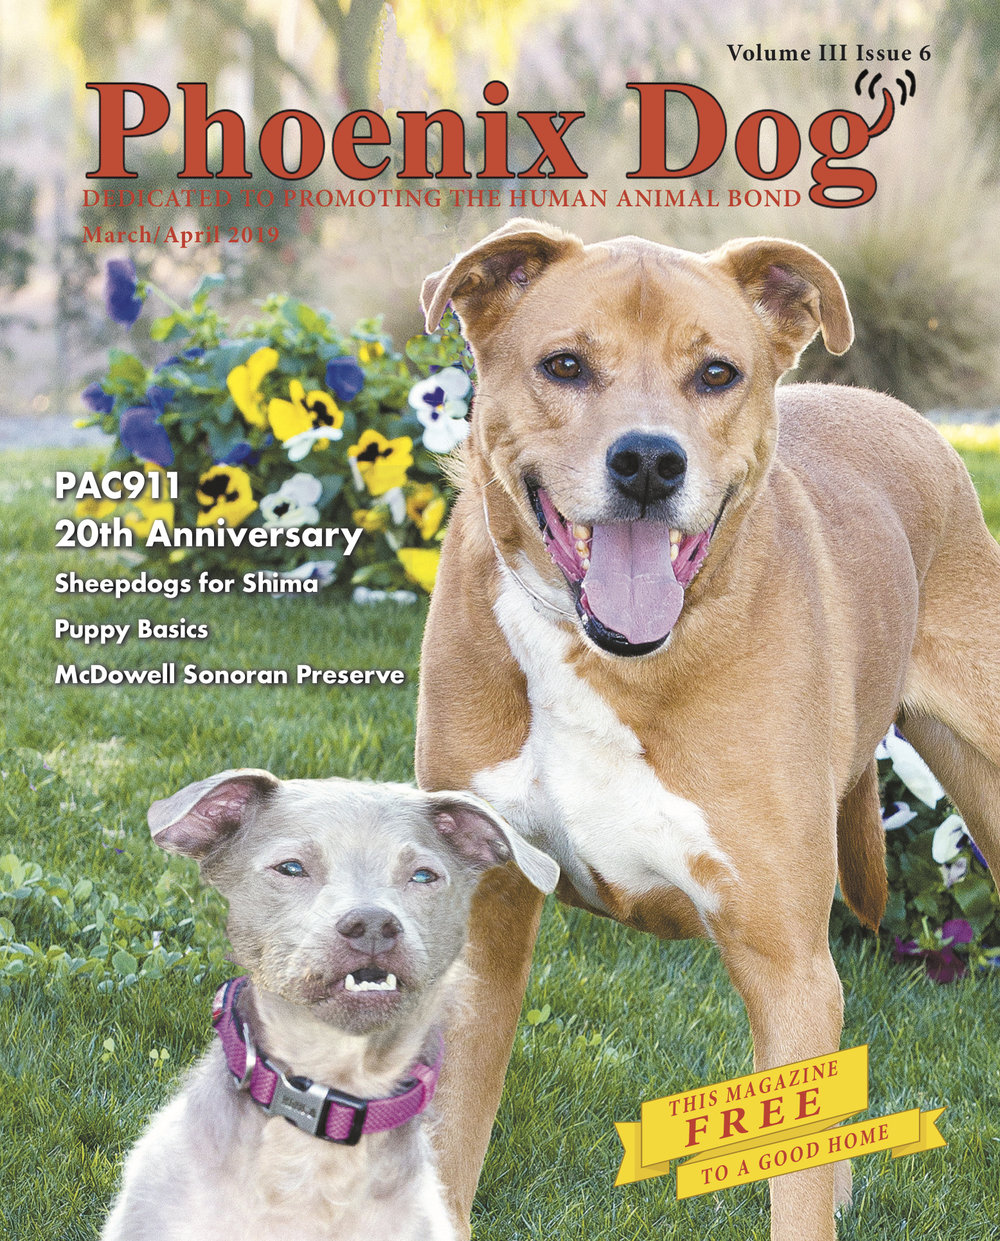 Phx Dog March April 2019 cover.jpg